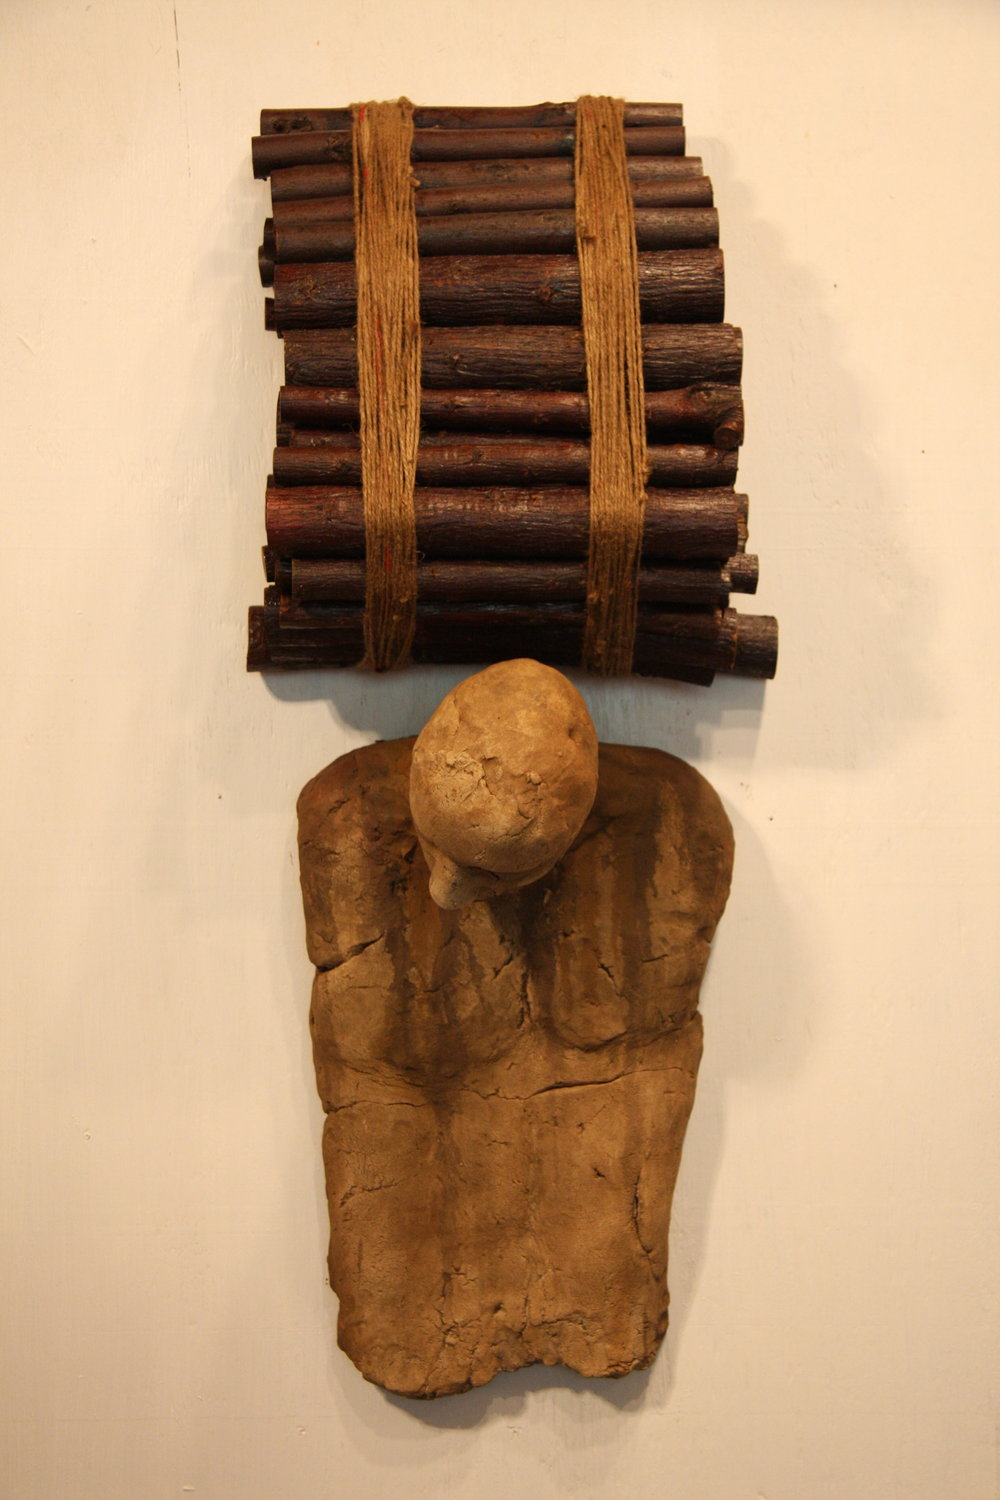 Bearing the altarwood of heaven   2010  Ceramic, wood and twine  36 x 15 x 10